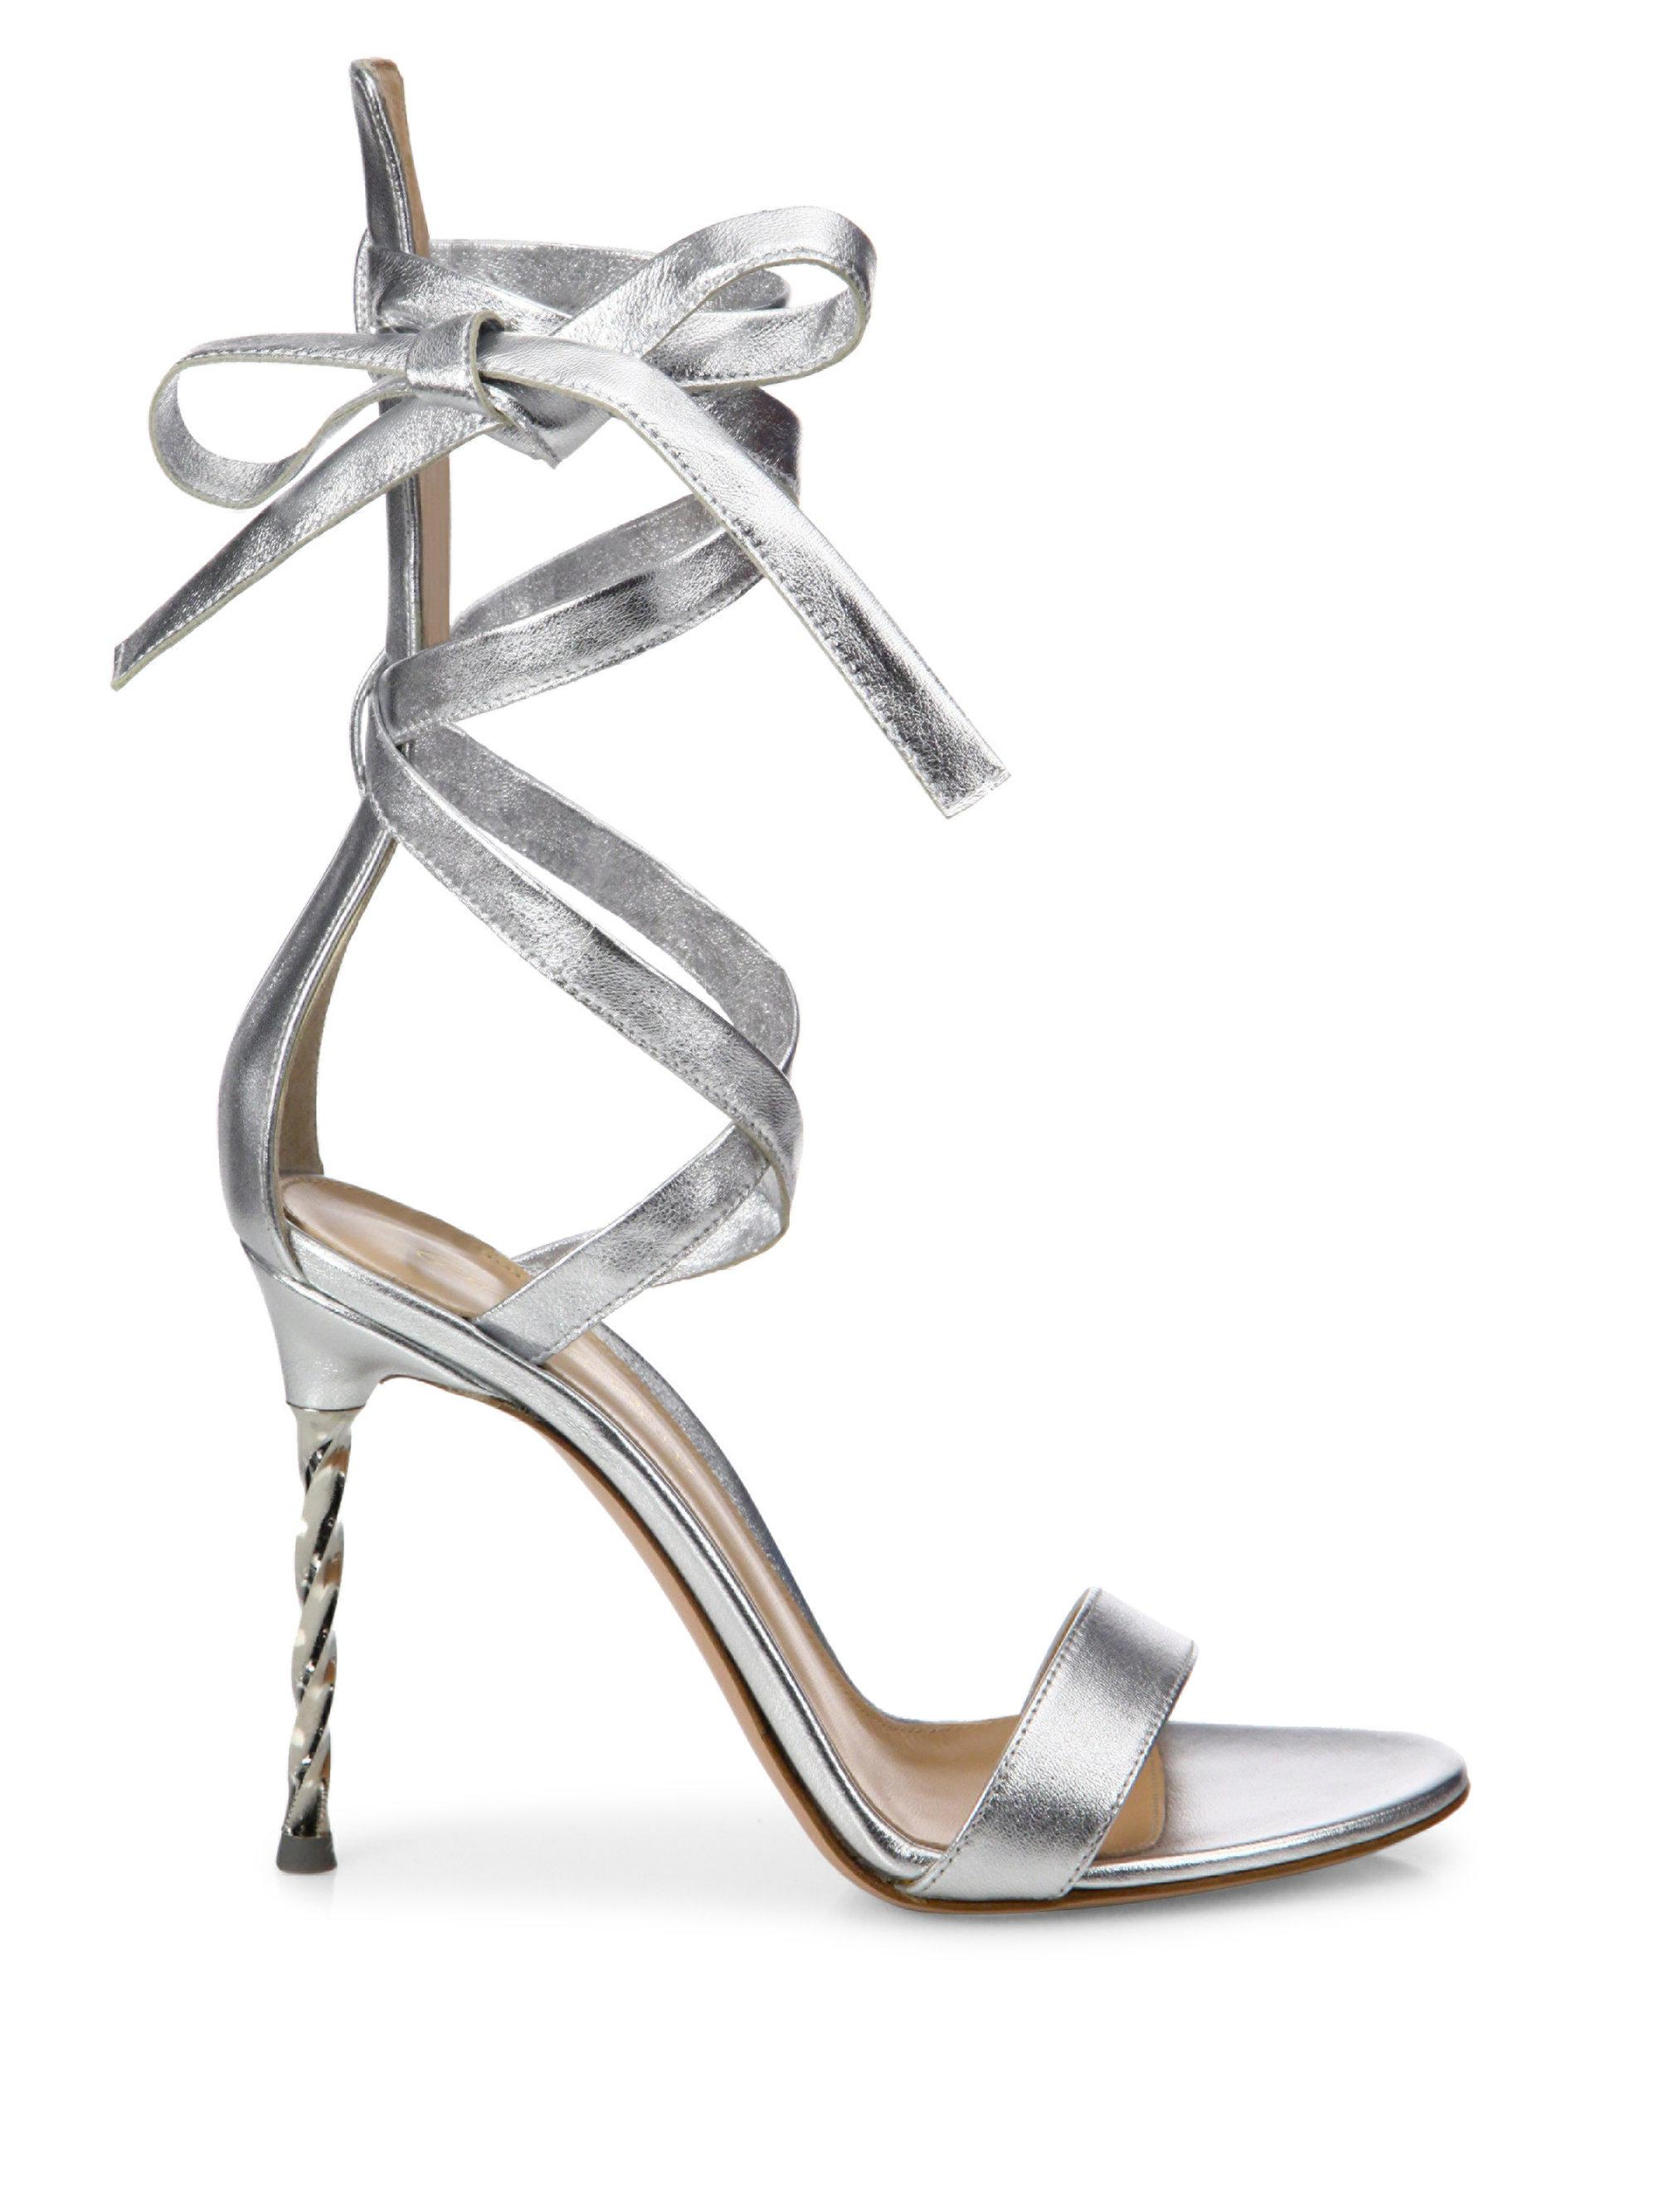 b1e94901499d5f Lyst - Gianvito Rossi Folie Metallic Leather Ankle-wrap Sandals in ...